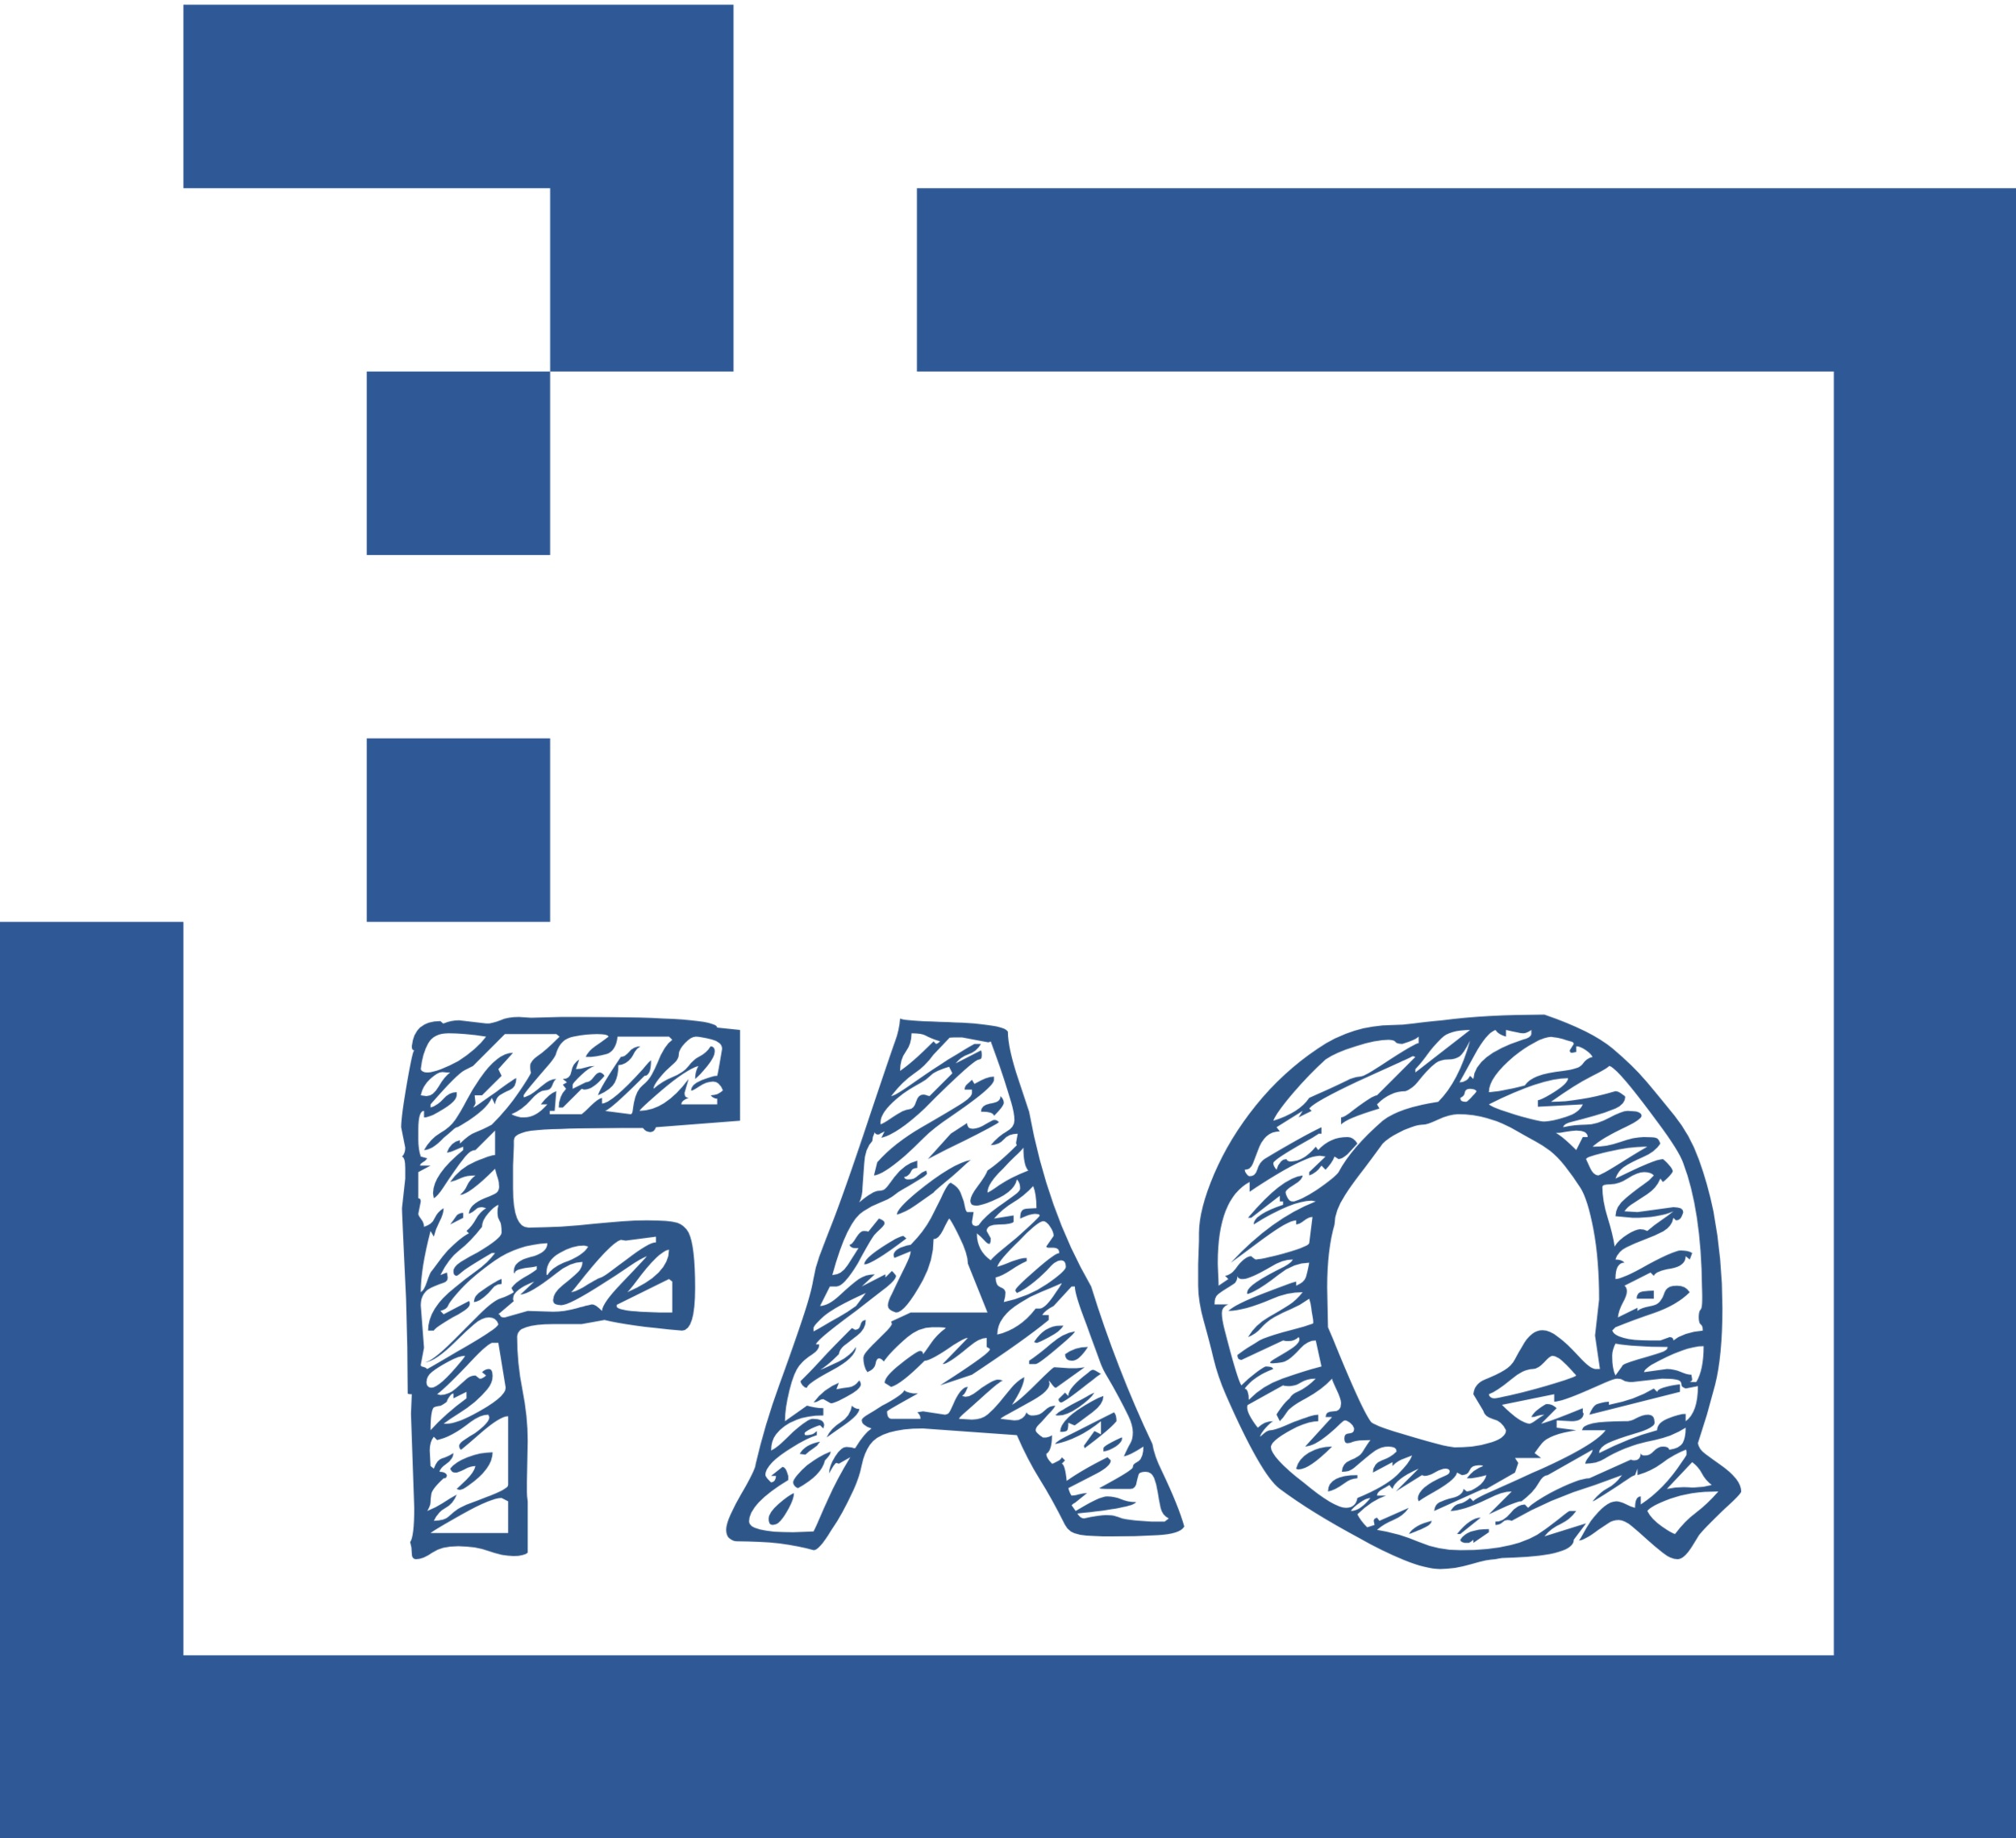 Ocean-games-faq-icon.jpg